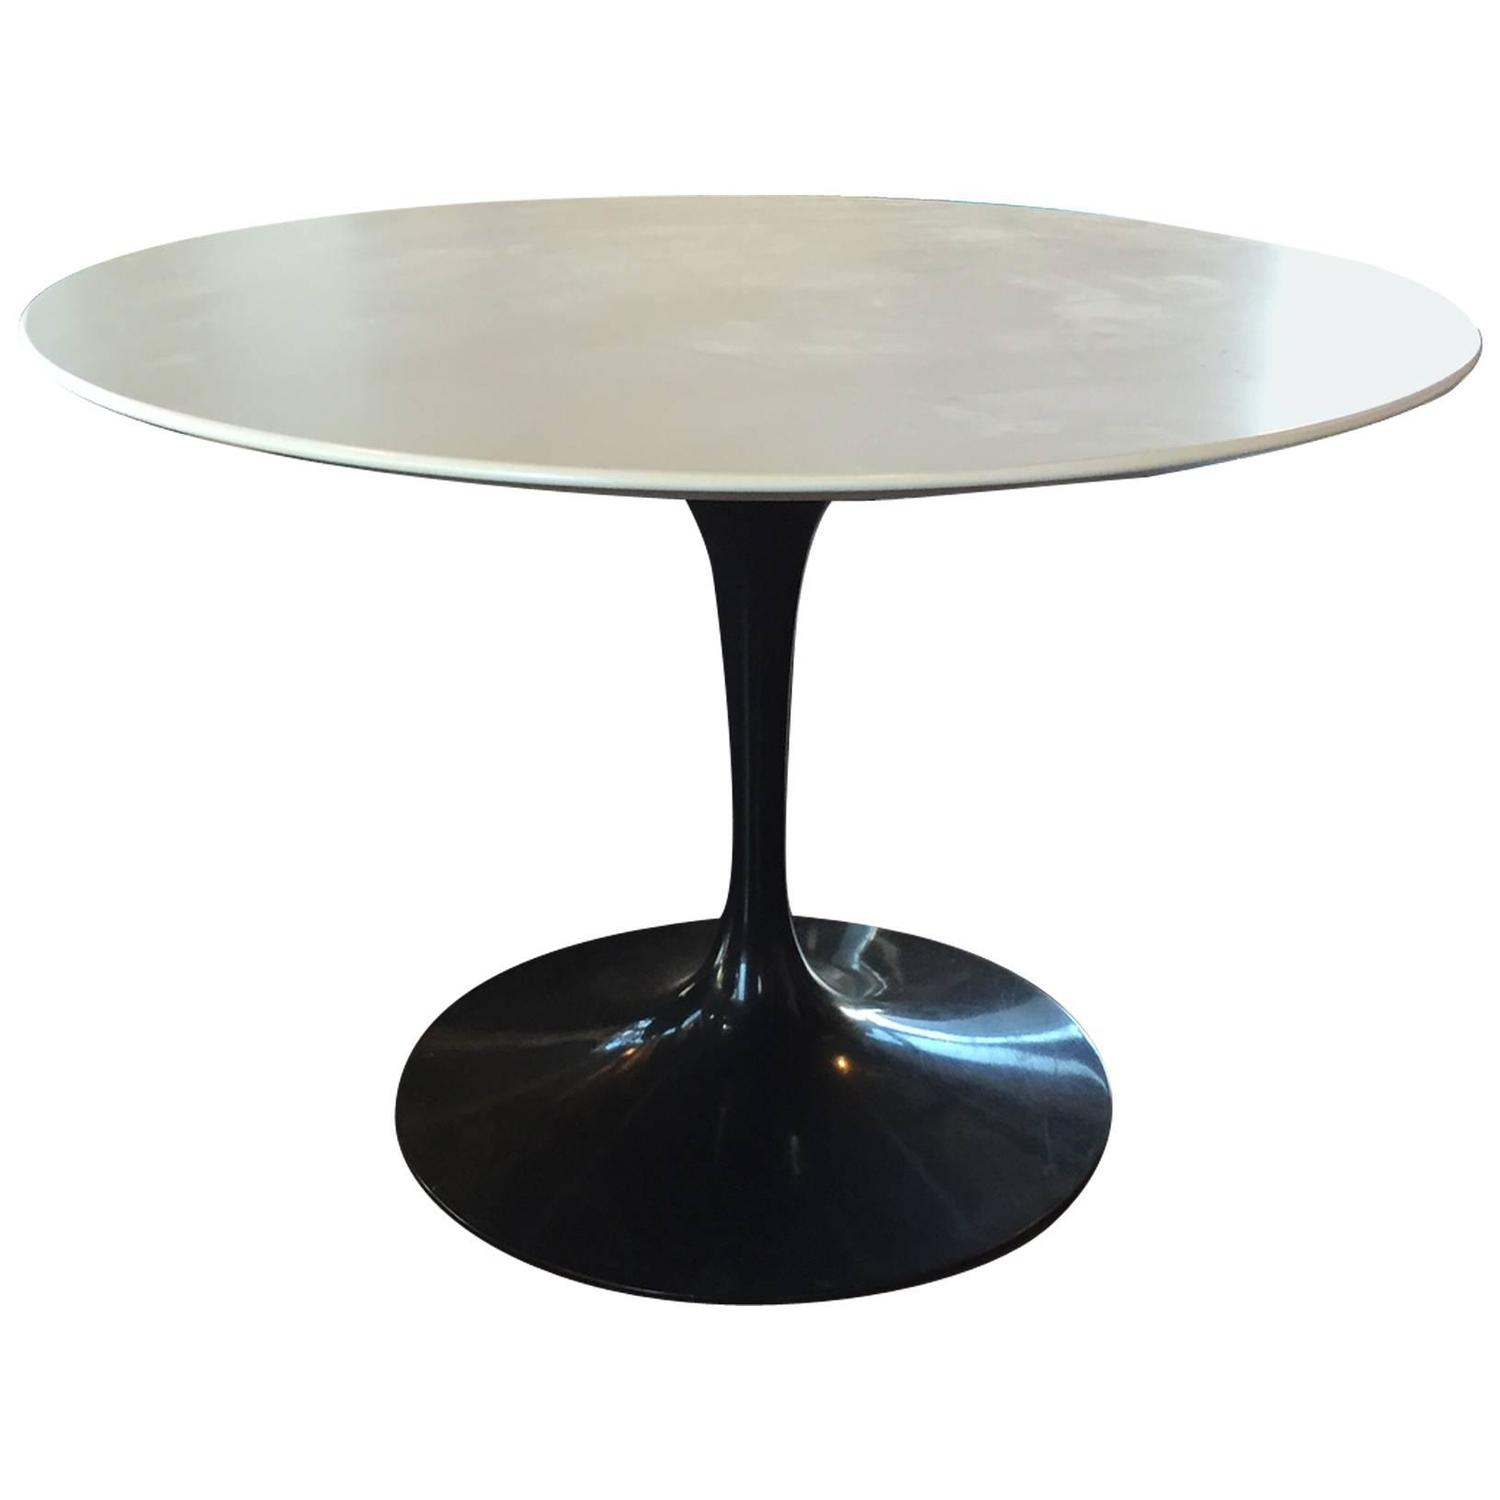 eero saarinen for knoll tulip dining table at 1stdibs. Black Bedroom Furniture Sets. Home Design Ideas